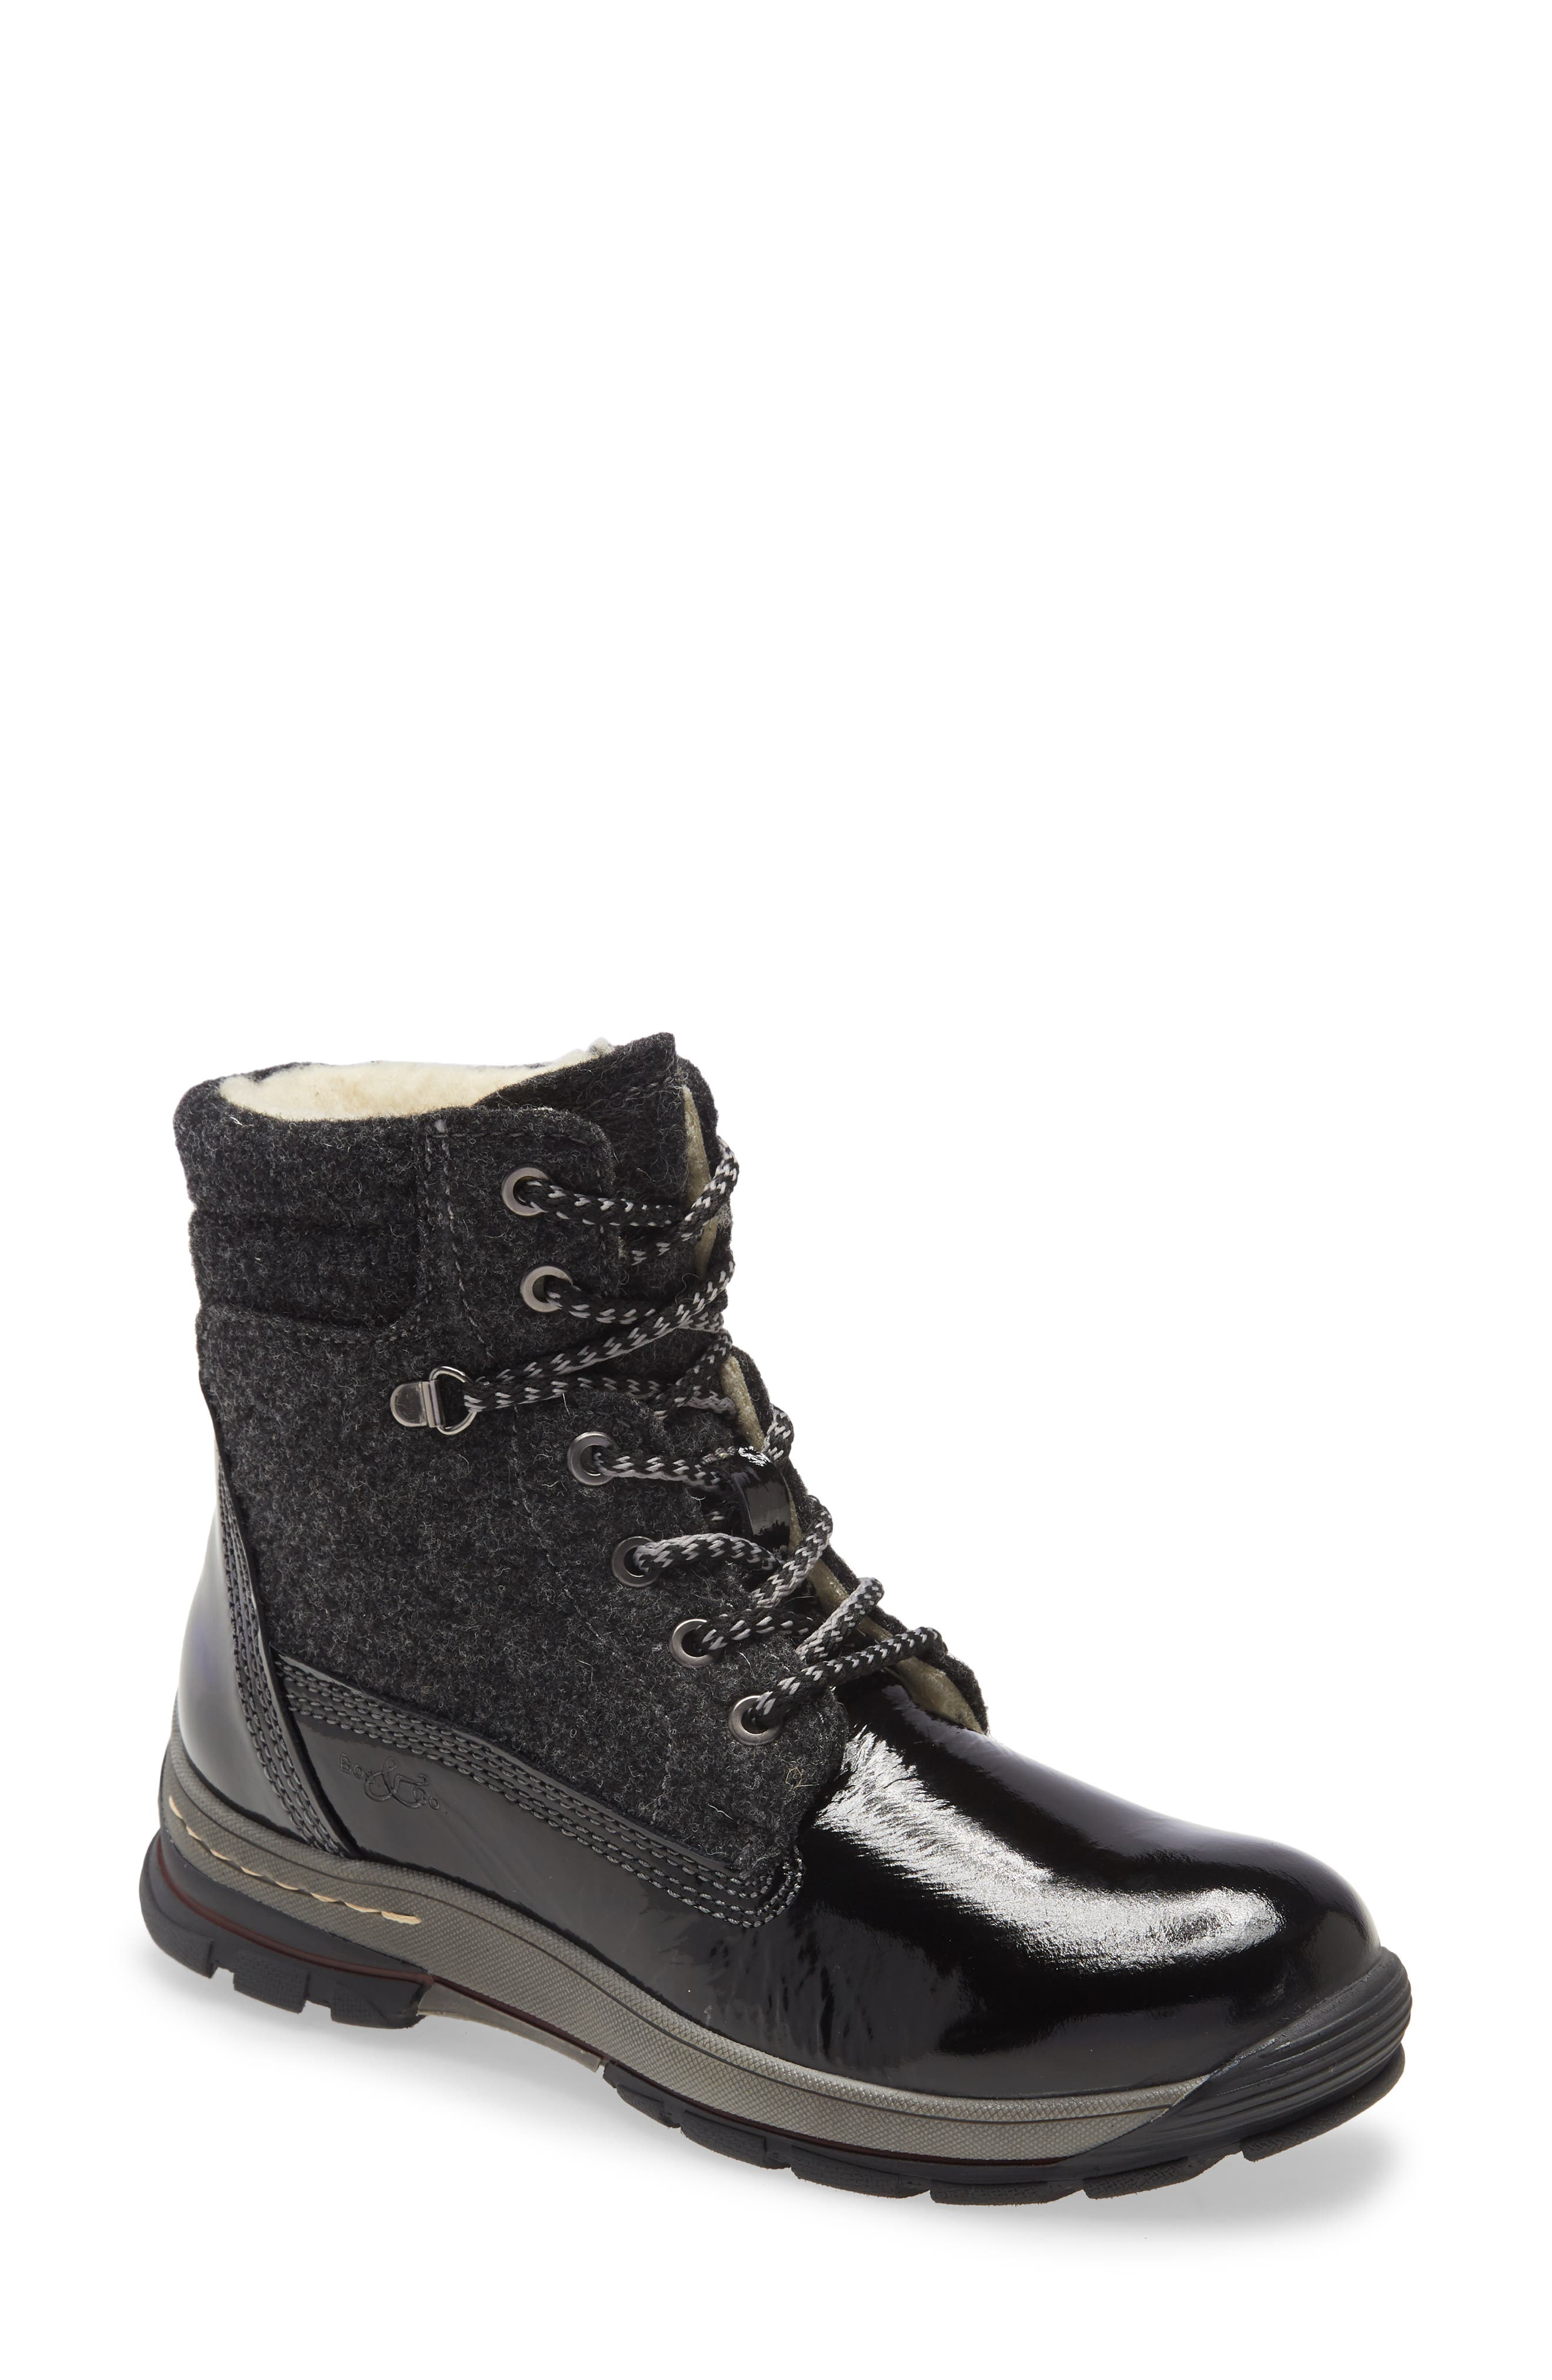 Hiker styling brings on-trend appeal to a waterproof mixed-media boot designed with a cozy wool lining and grippy lug sole to take on Old Man Winter\\\'s worst. Style Name: Bos. & Co. Gift Lace Up Wool & Leather Boot (Women). Style Number: 6086140. Available in stores.